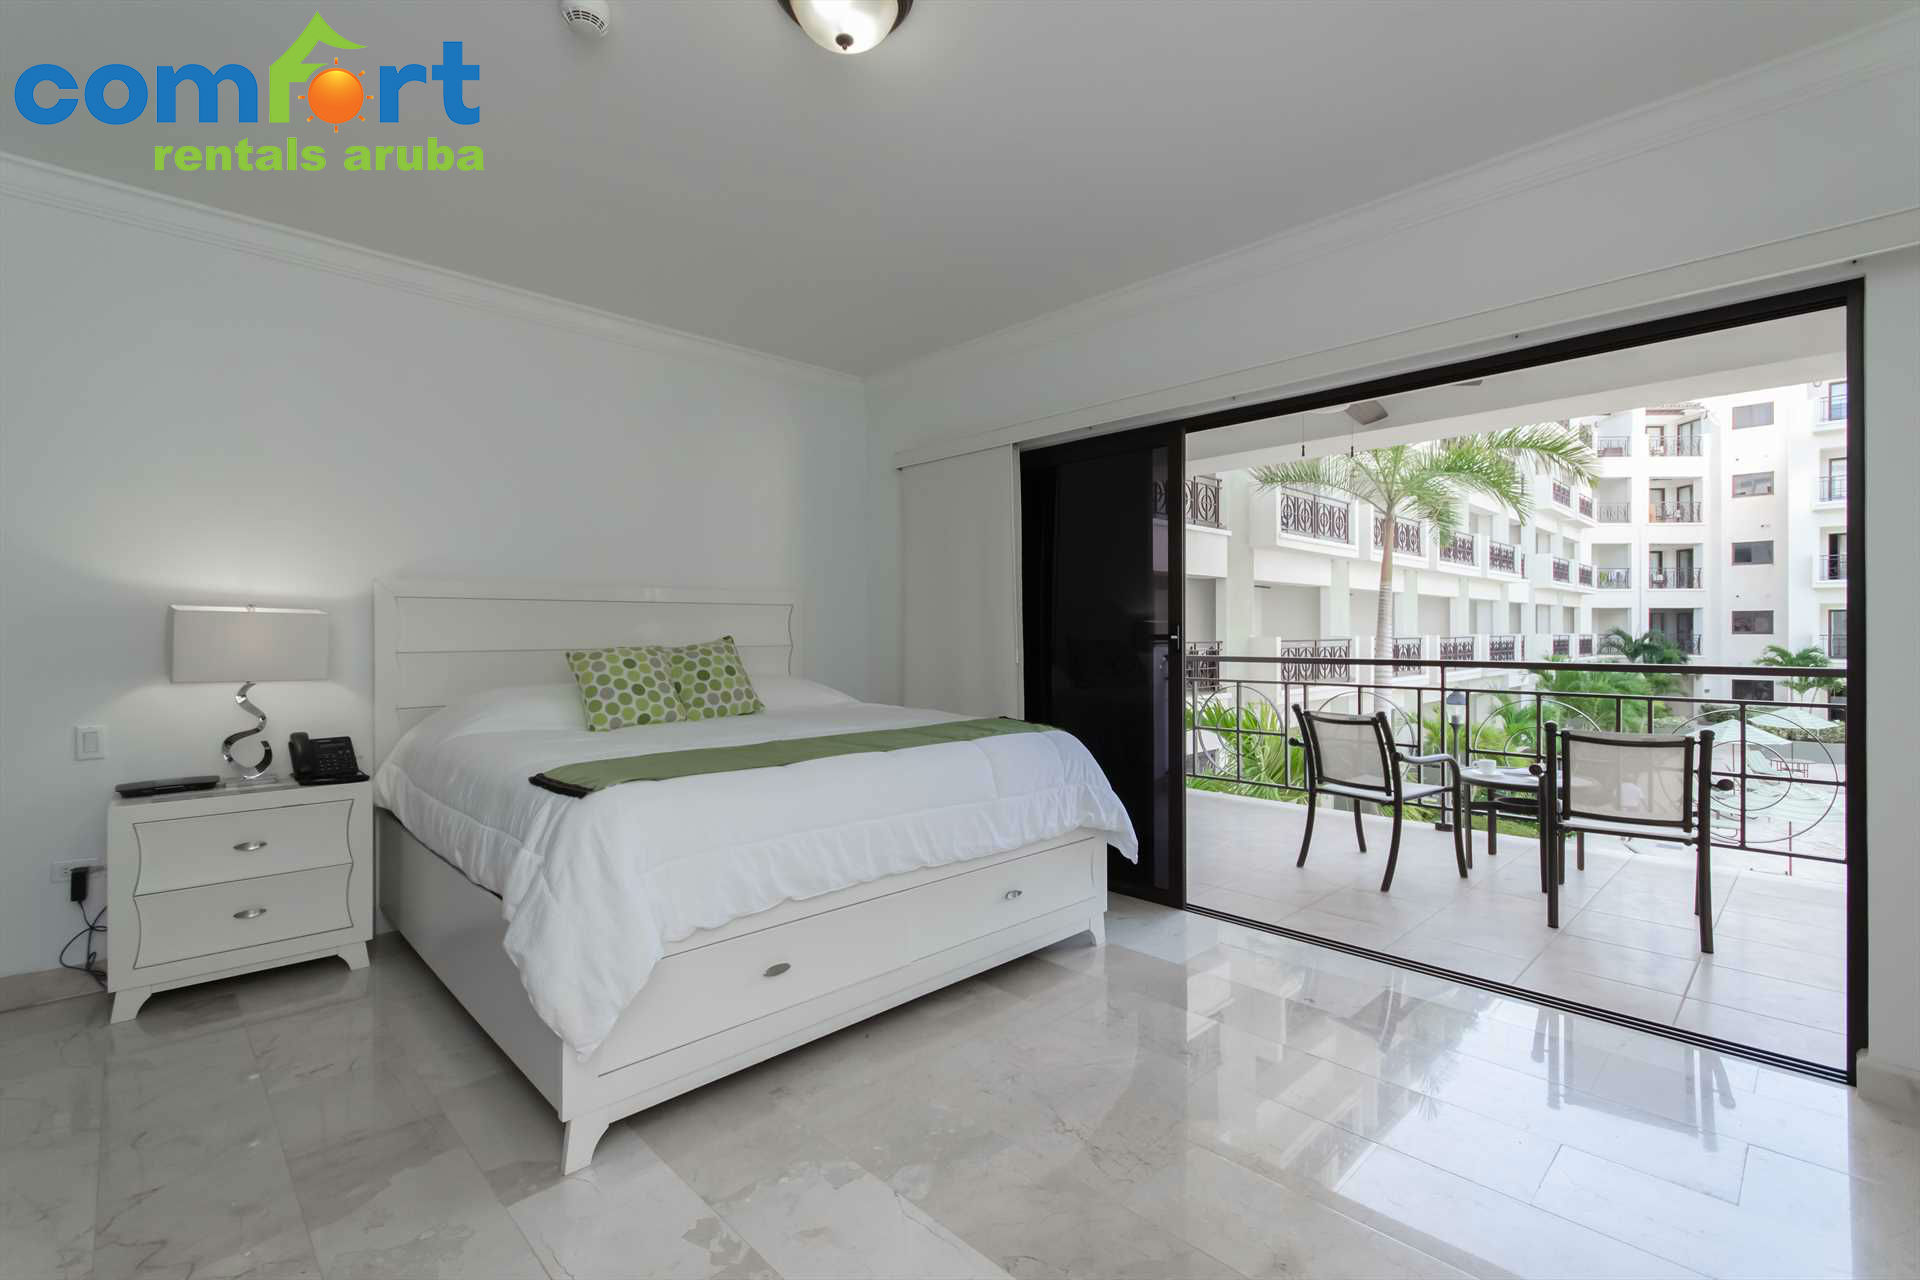 The master bedroom with a king-size bed and access to the balcony